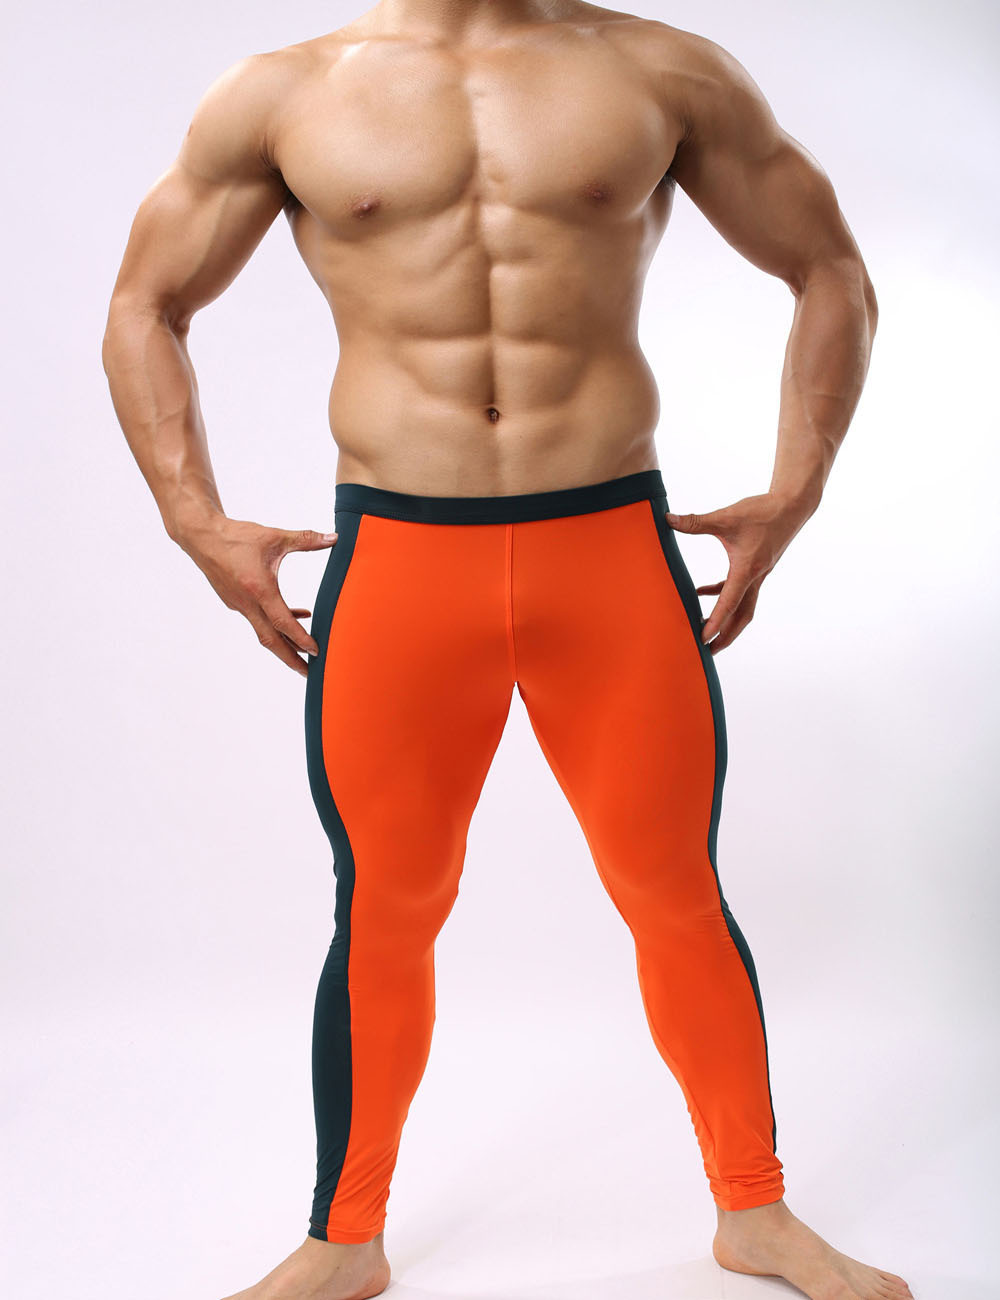 Find Women's Tight Pants & Tights at wilmergolding6jn1.gq Enjoy free shipping and returns with NikePlus.